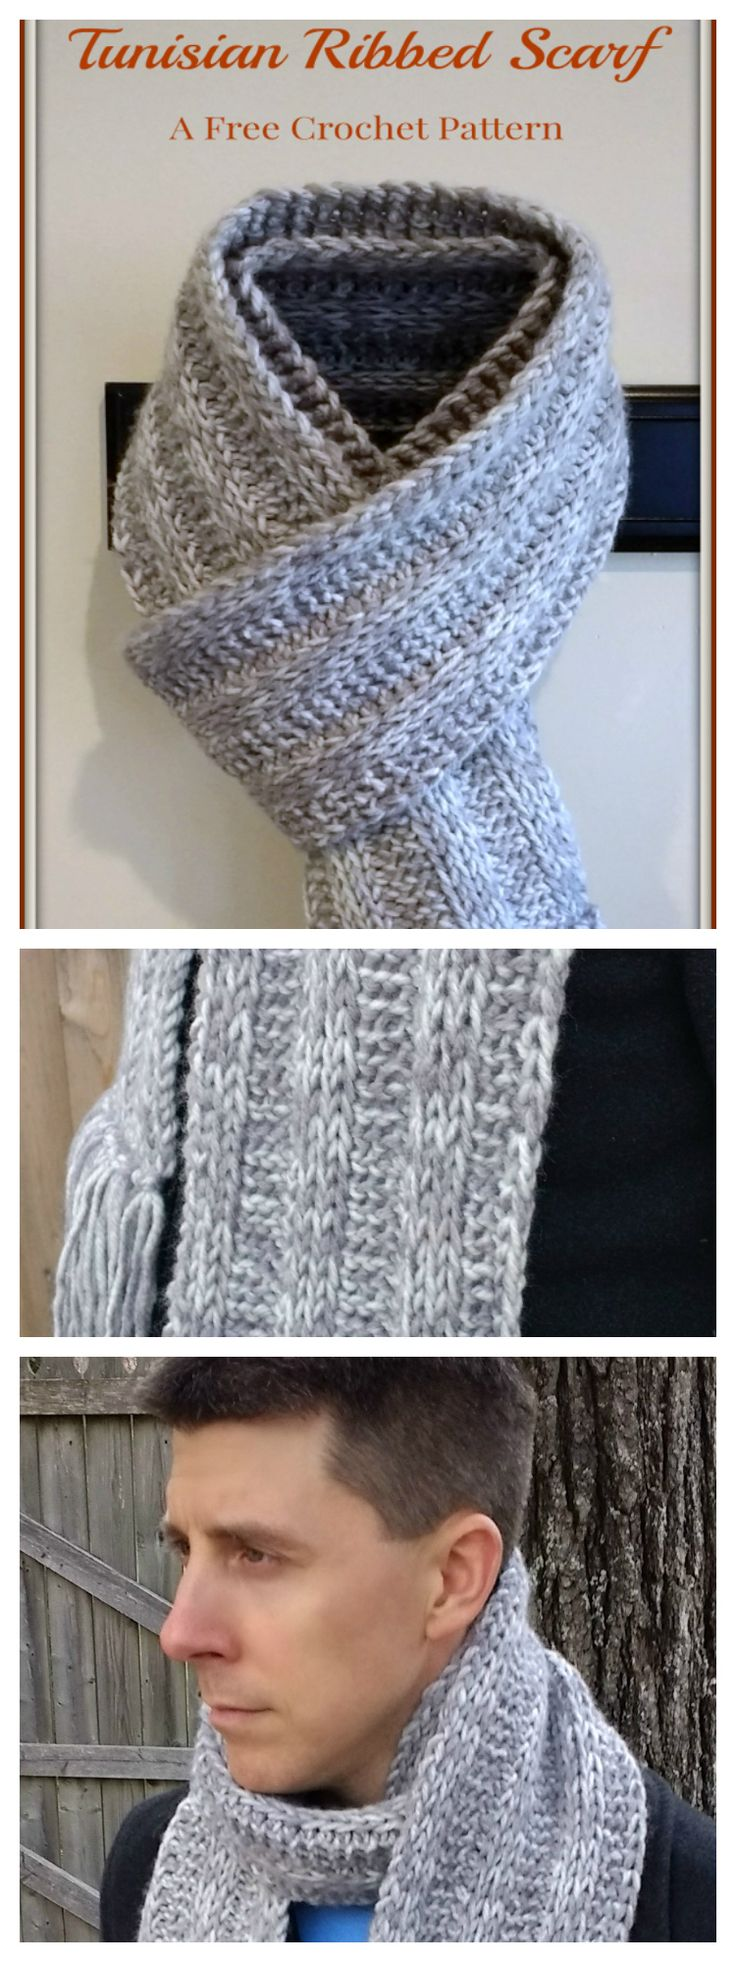 Best 25 crochet scarf patterns ideas on pinterest scarf crochet easy tunisian crochet ribbed scarf pattern bankloansurffo Choice Image